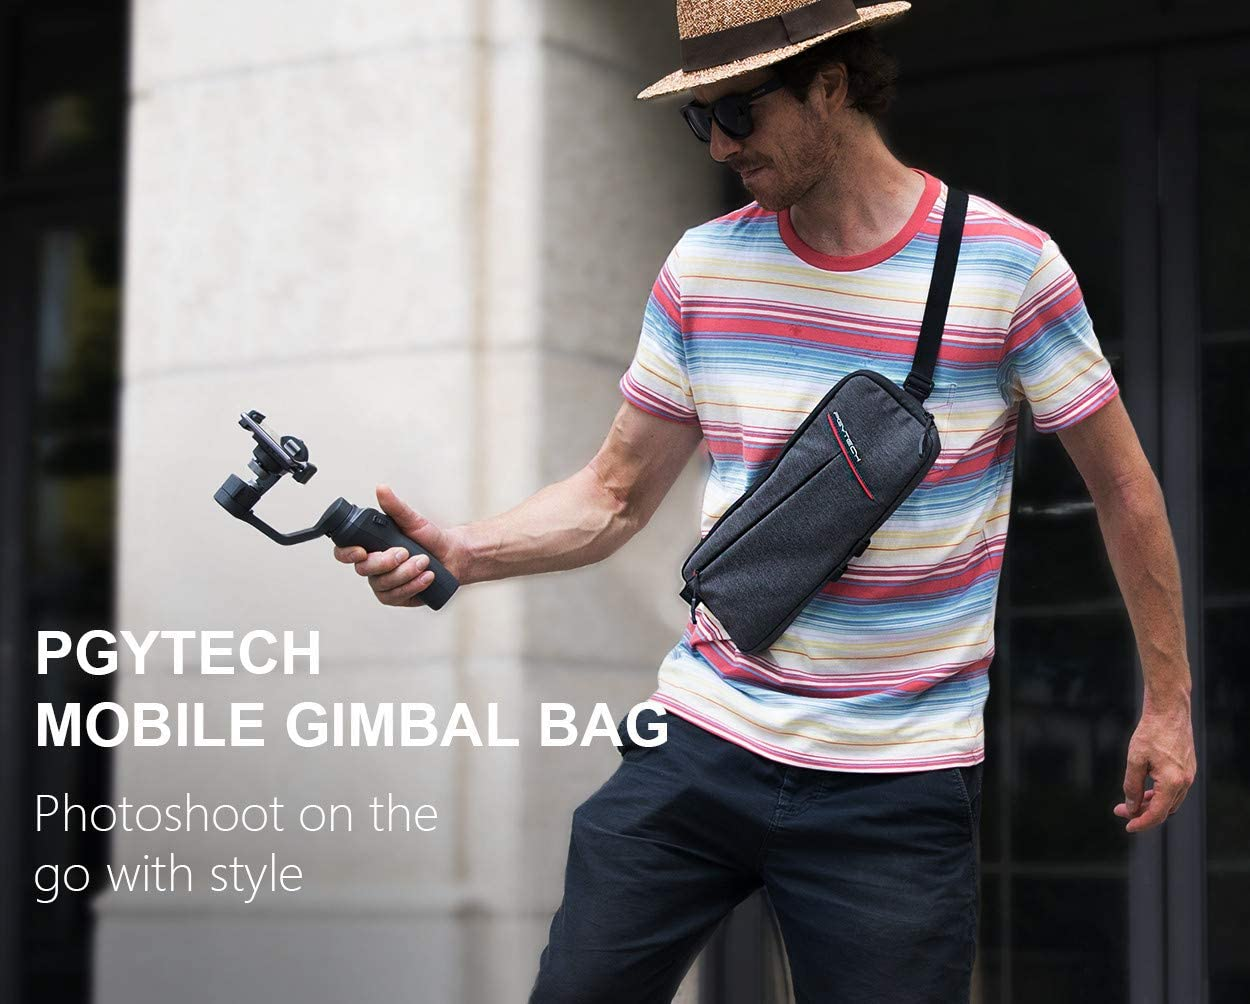 Compatible with DJI OSMO Mobile 2 ZhiYun Handheld Gimbal Perfect for Tripods Handheld Gimbal Storage Photogarphy Accessories Dacorda PGYTECH Mobile Gimbal Pocket Carry Bag USB Cable and Others